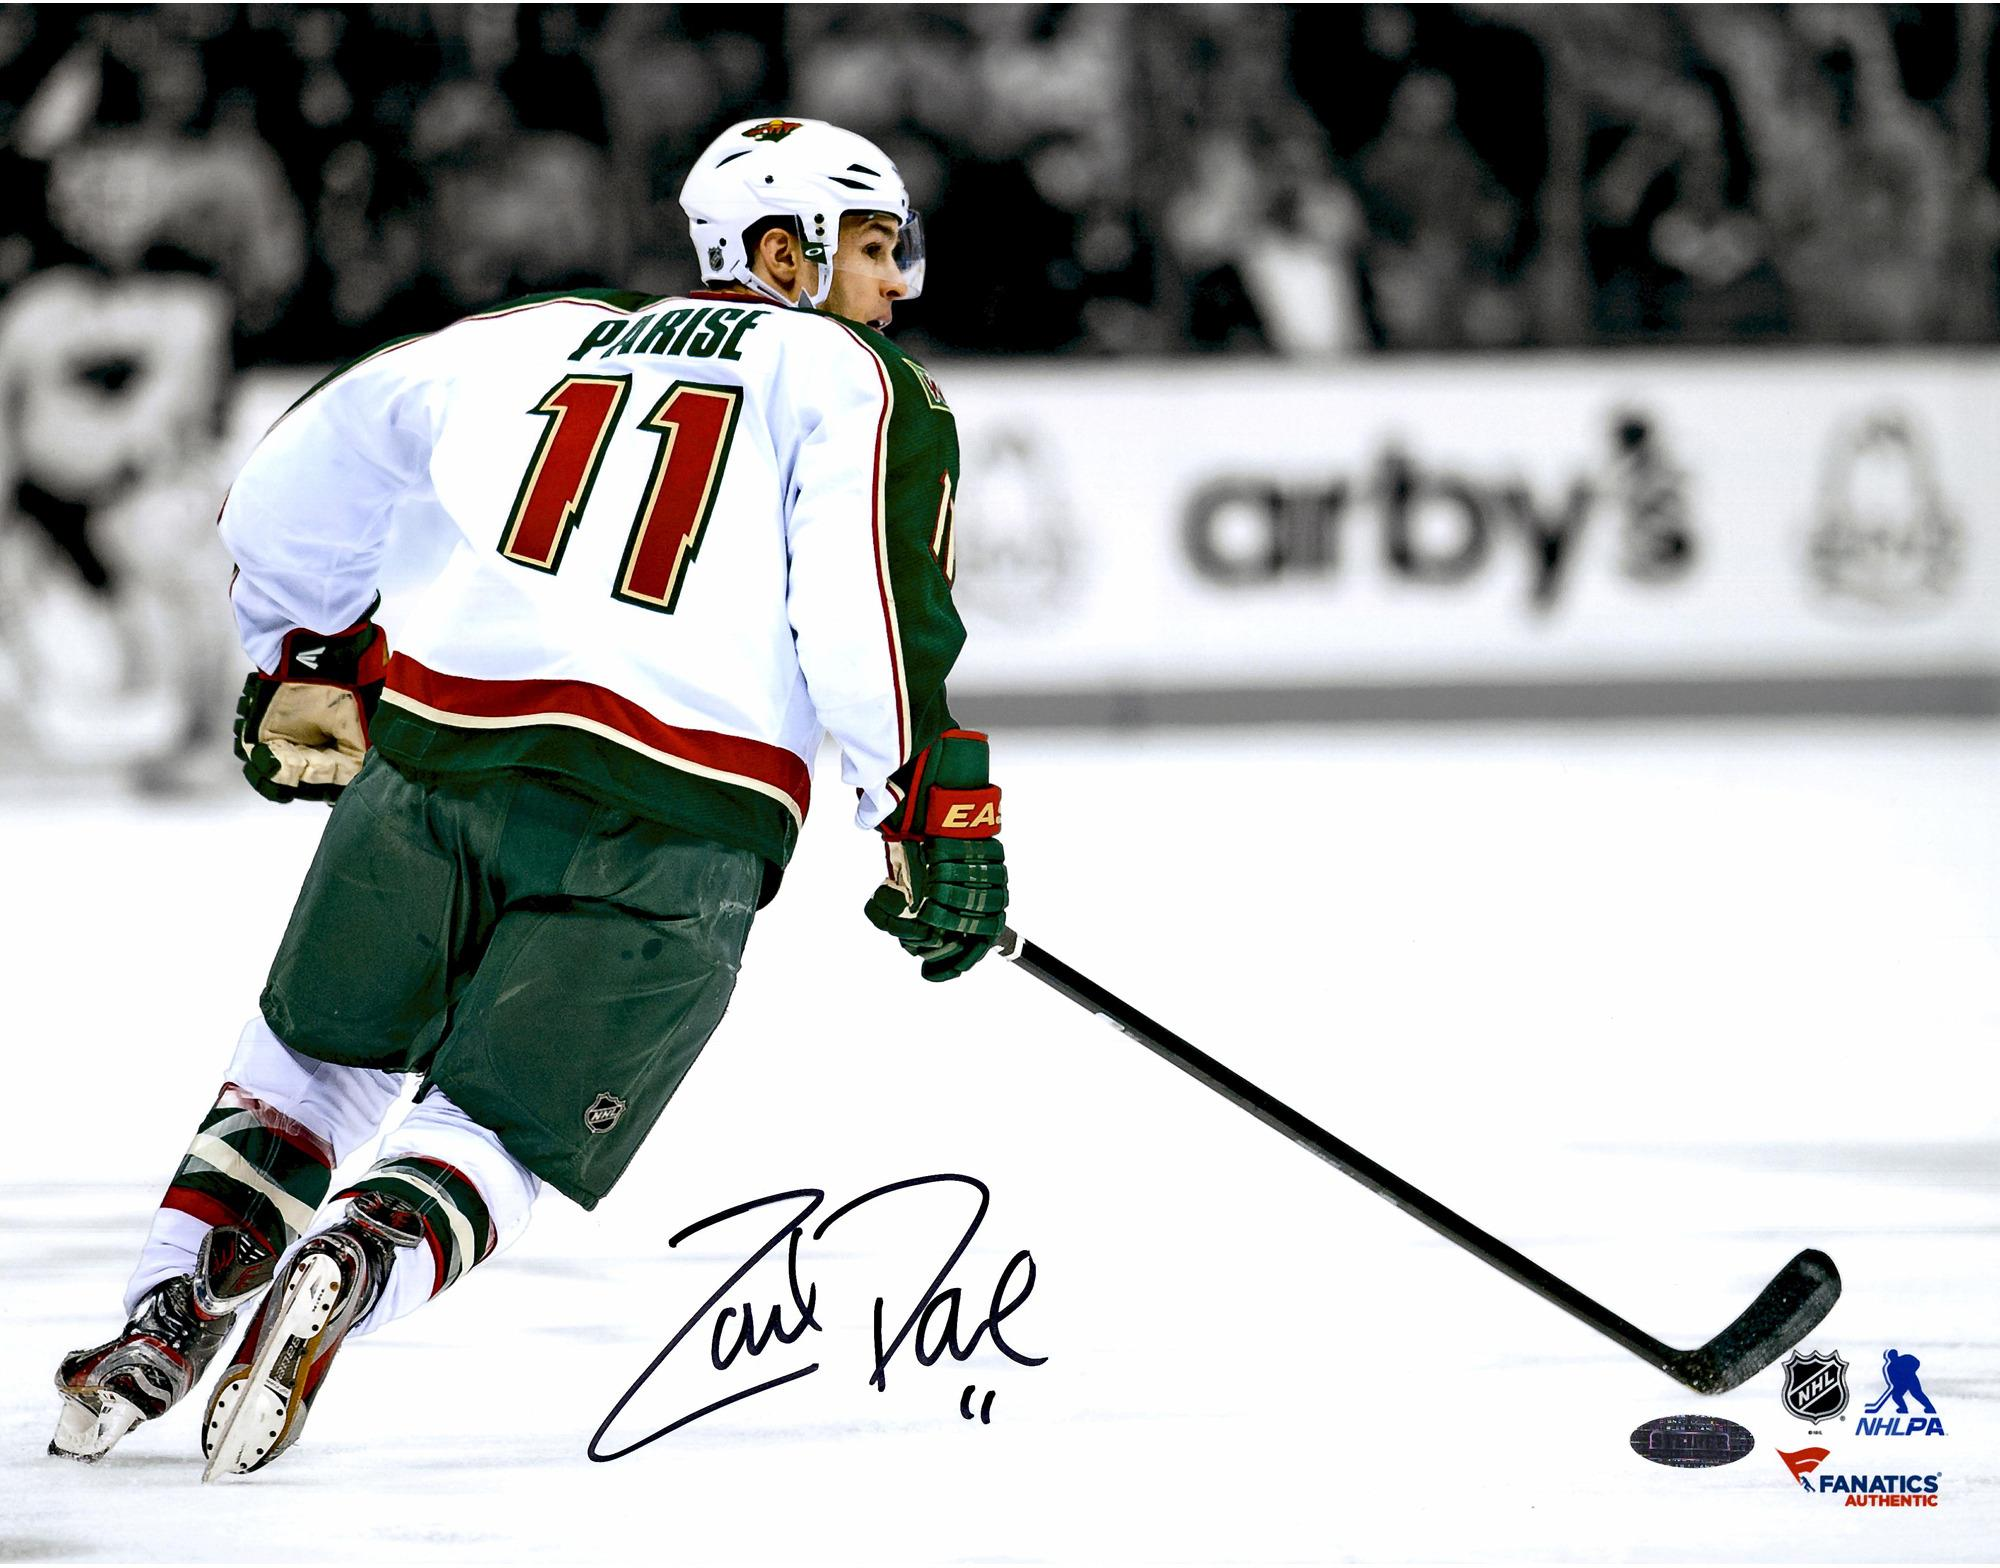 Zach Parise Autograph Signings